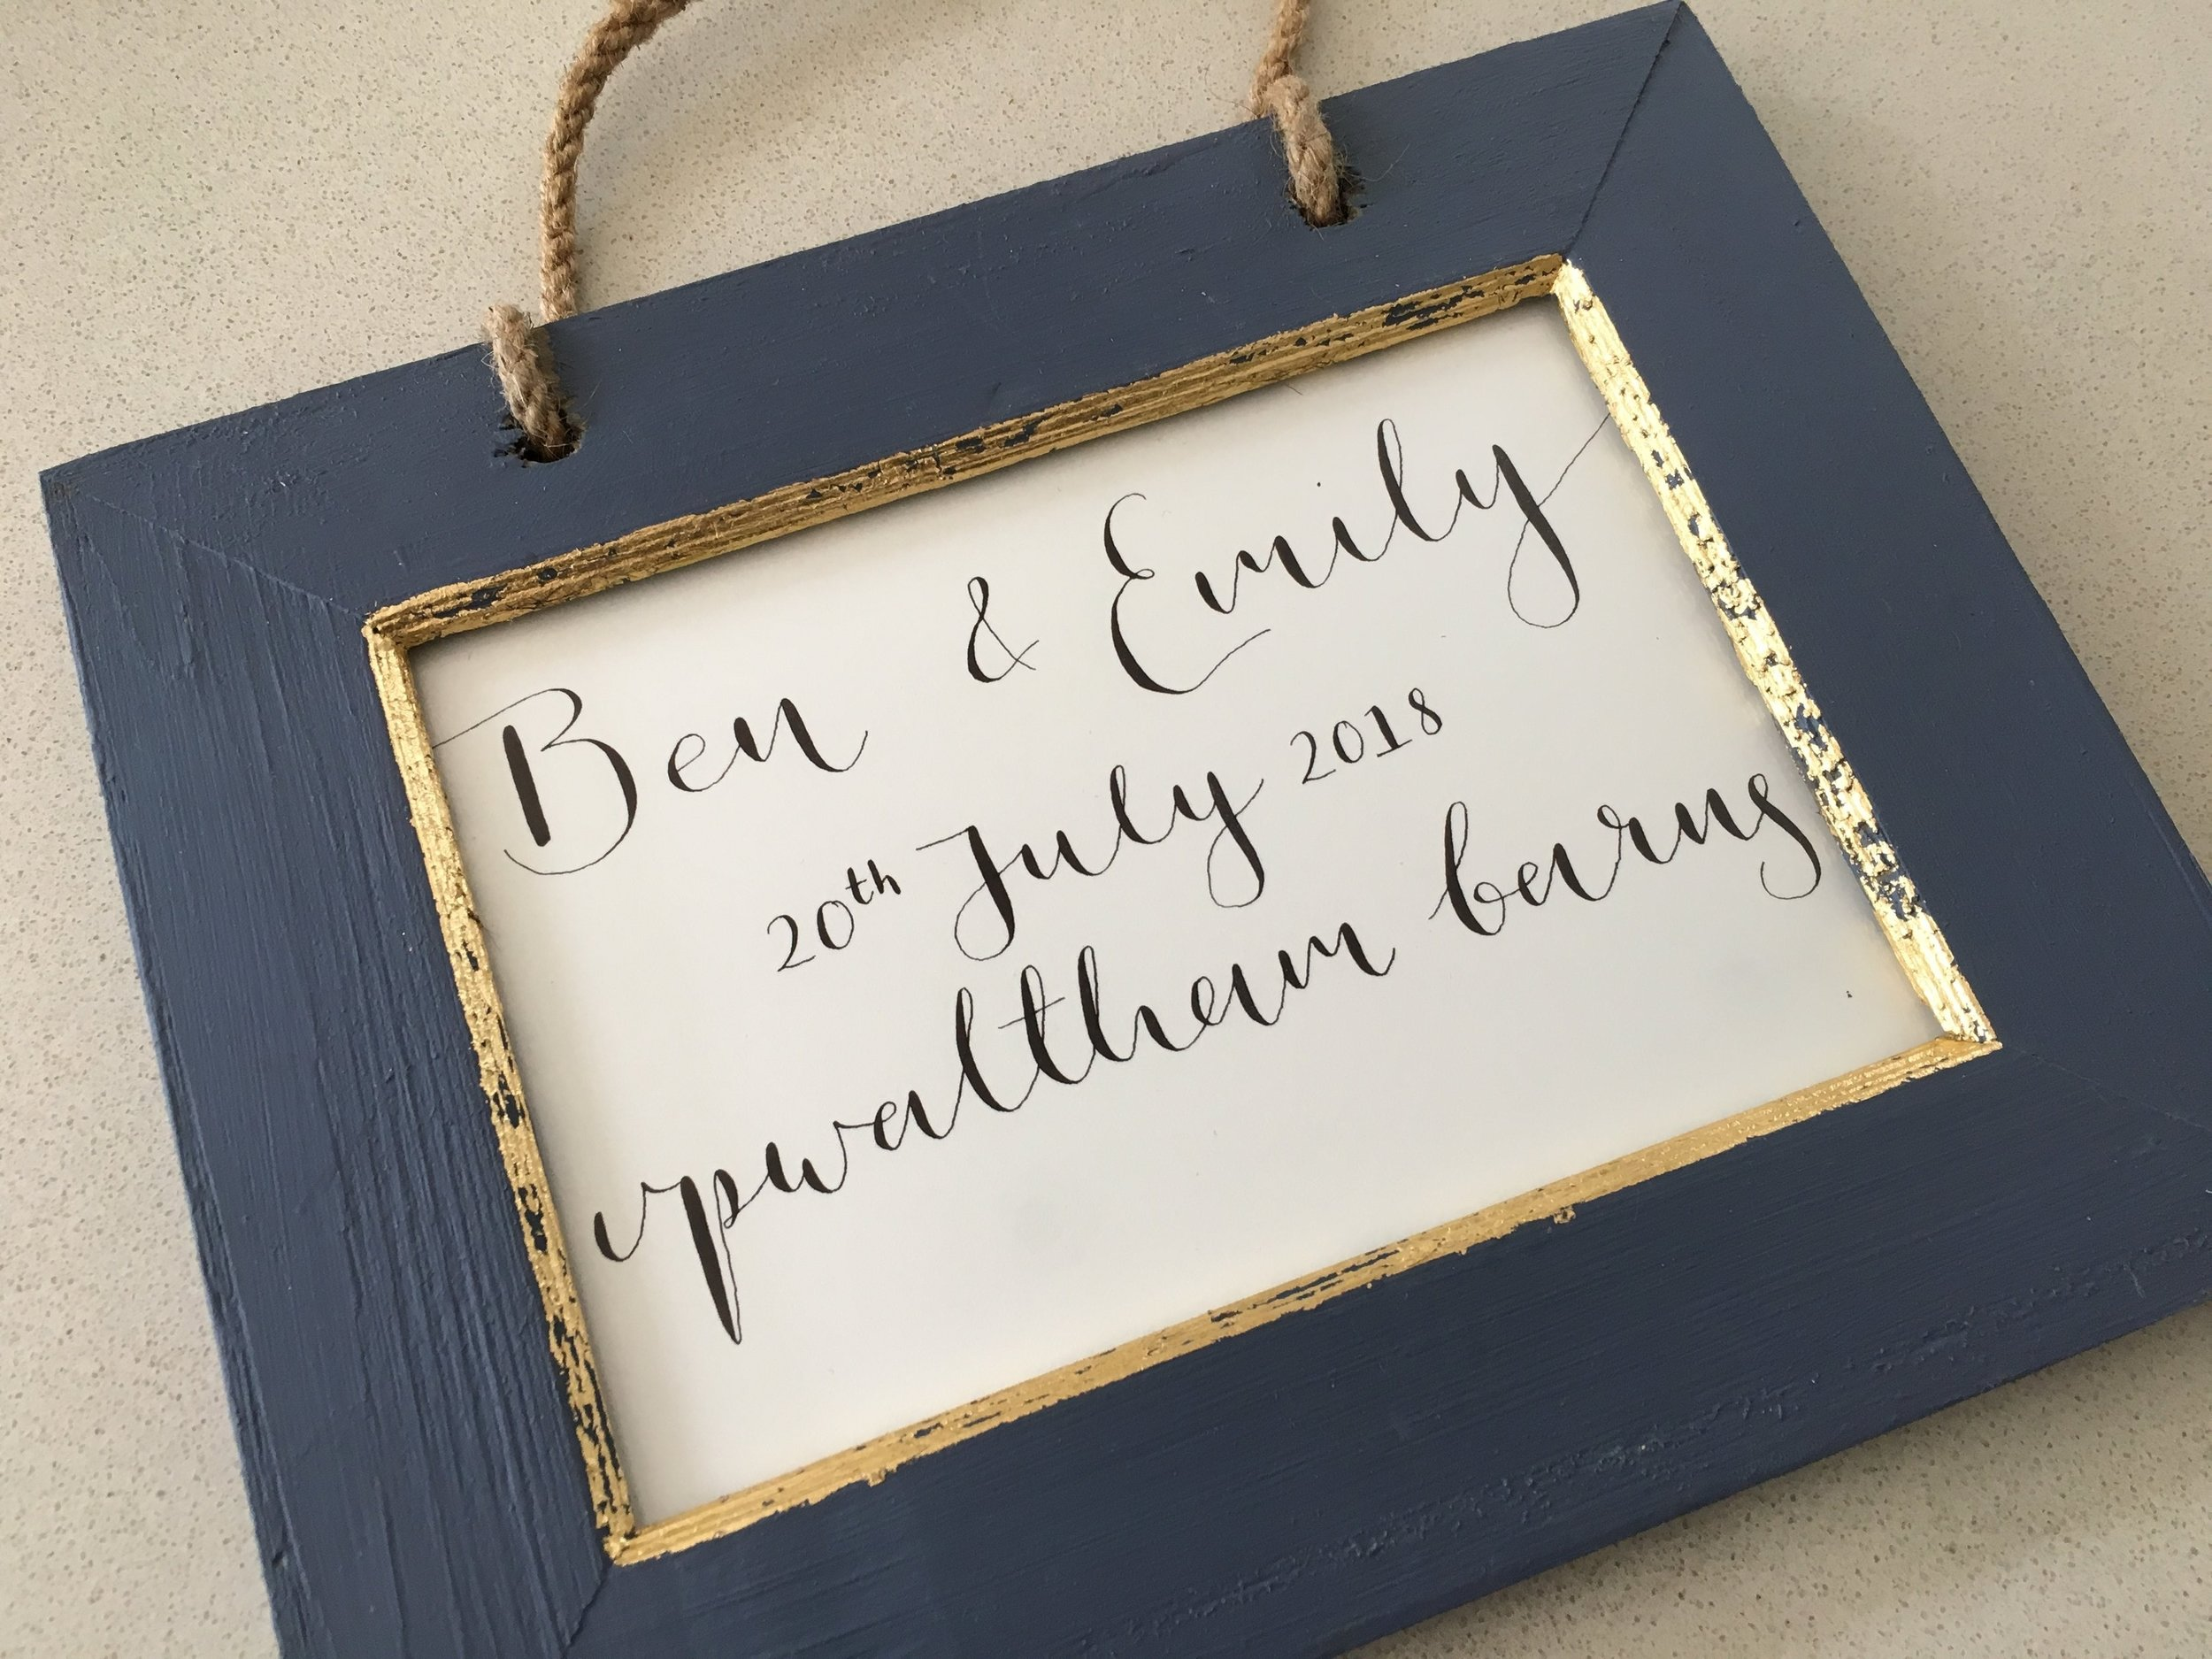 Wedding gift  - What a fab idea this wedding gift is! We personalised the calligraphy and placed it in one of our frames. We love how creative our customers are!